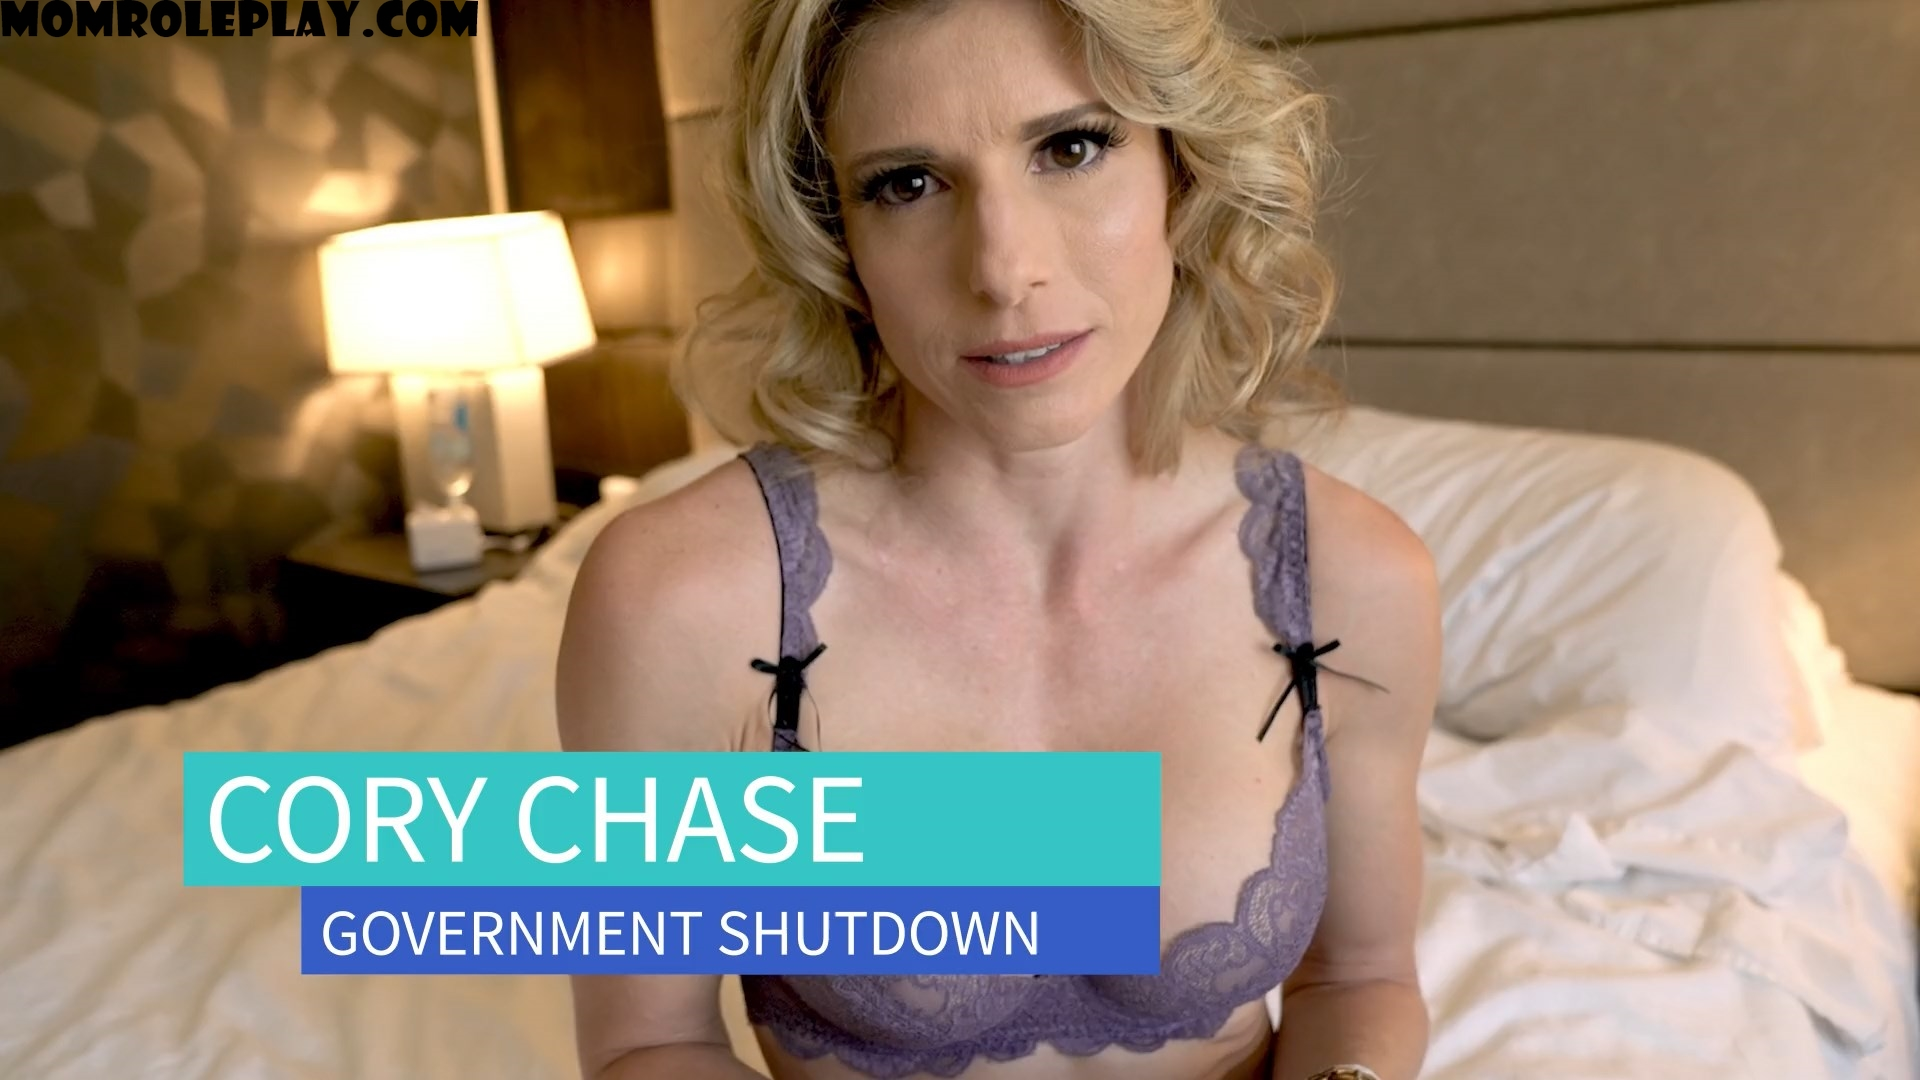 Bare Back Studios - Cory Chase in Government is Shutdown HD-1080p